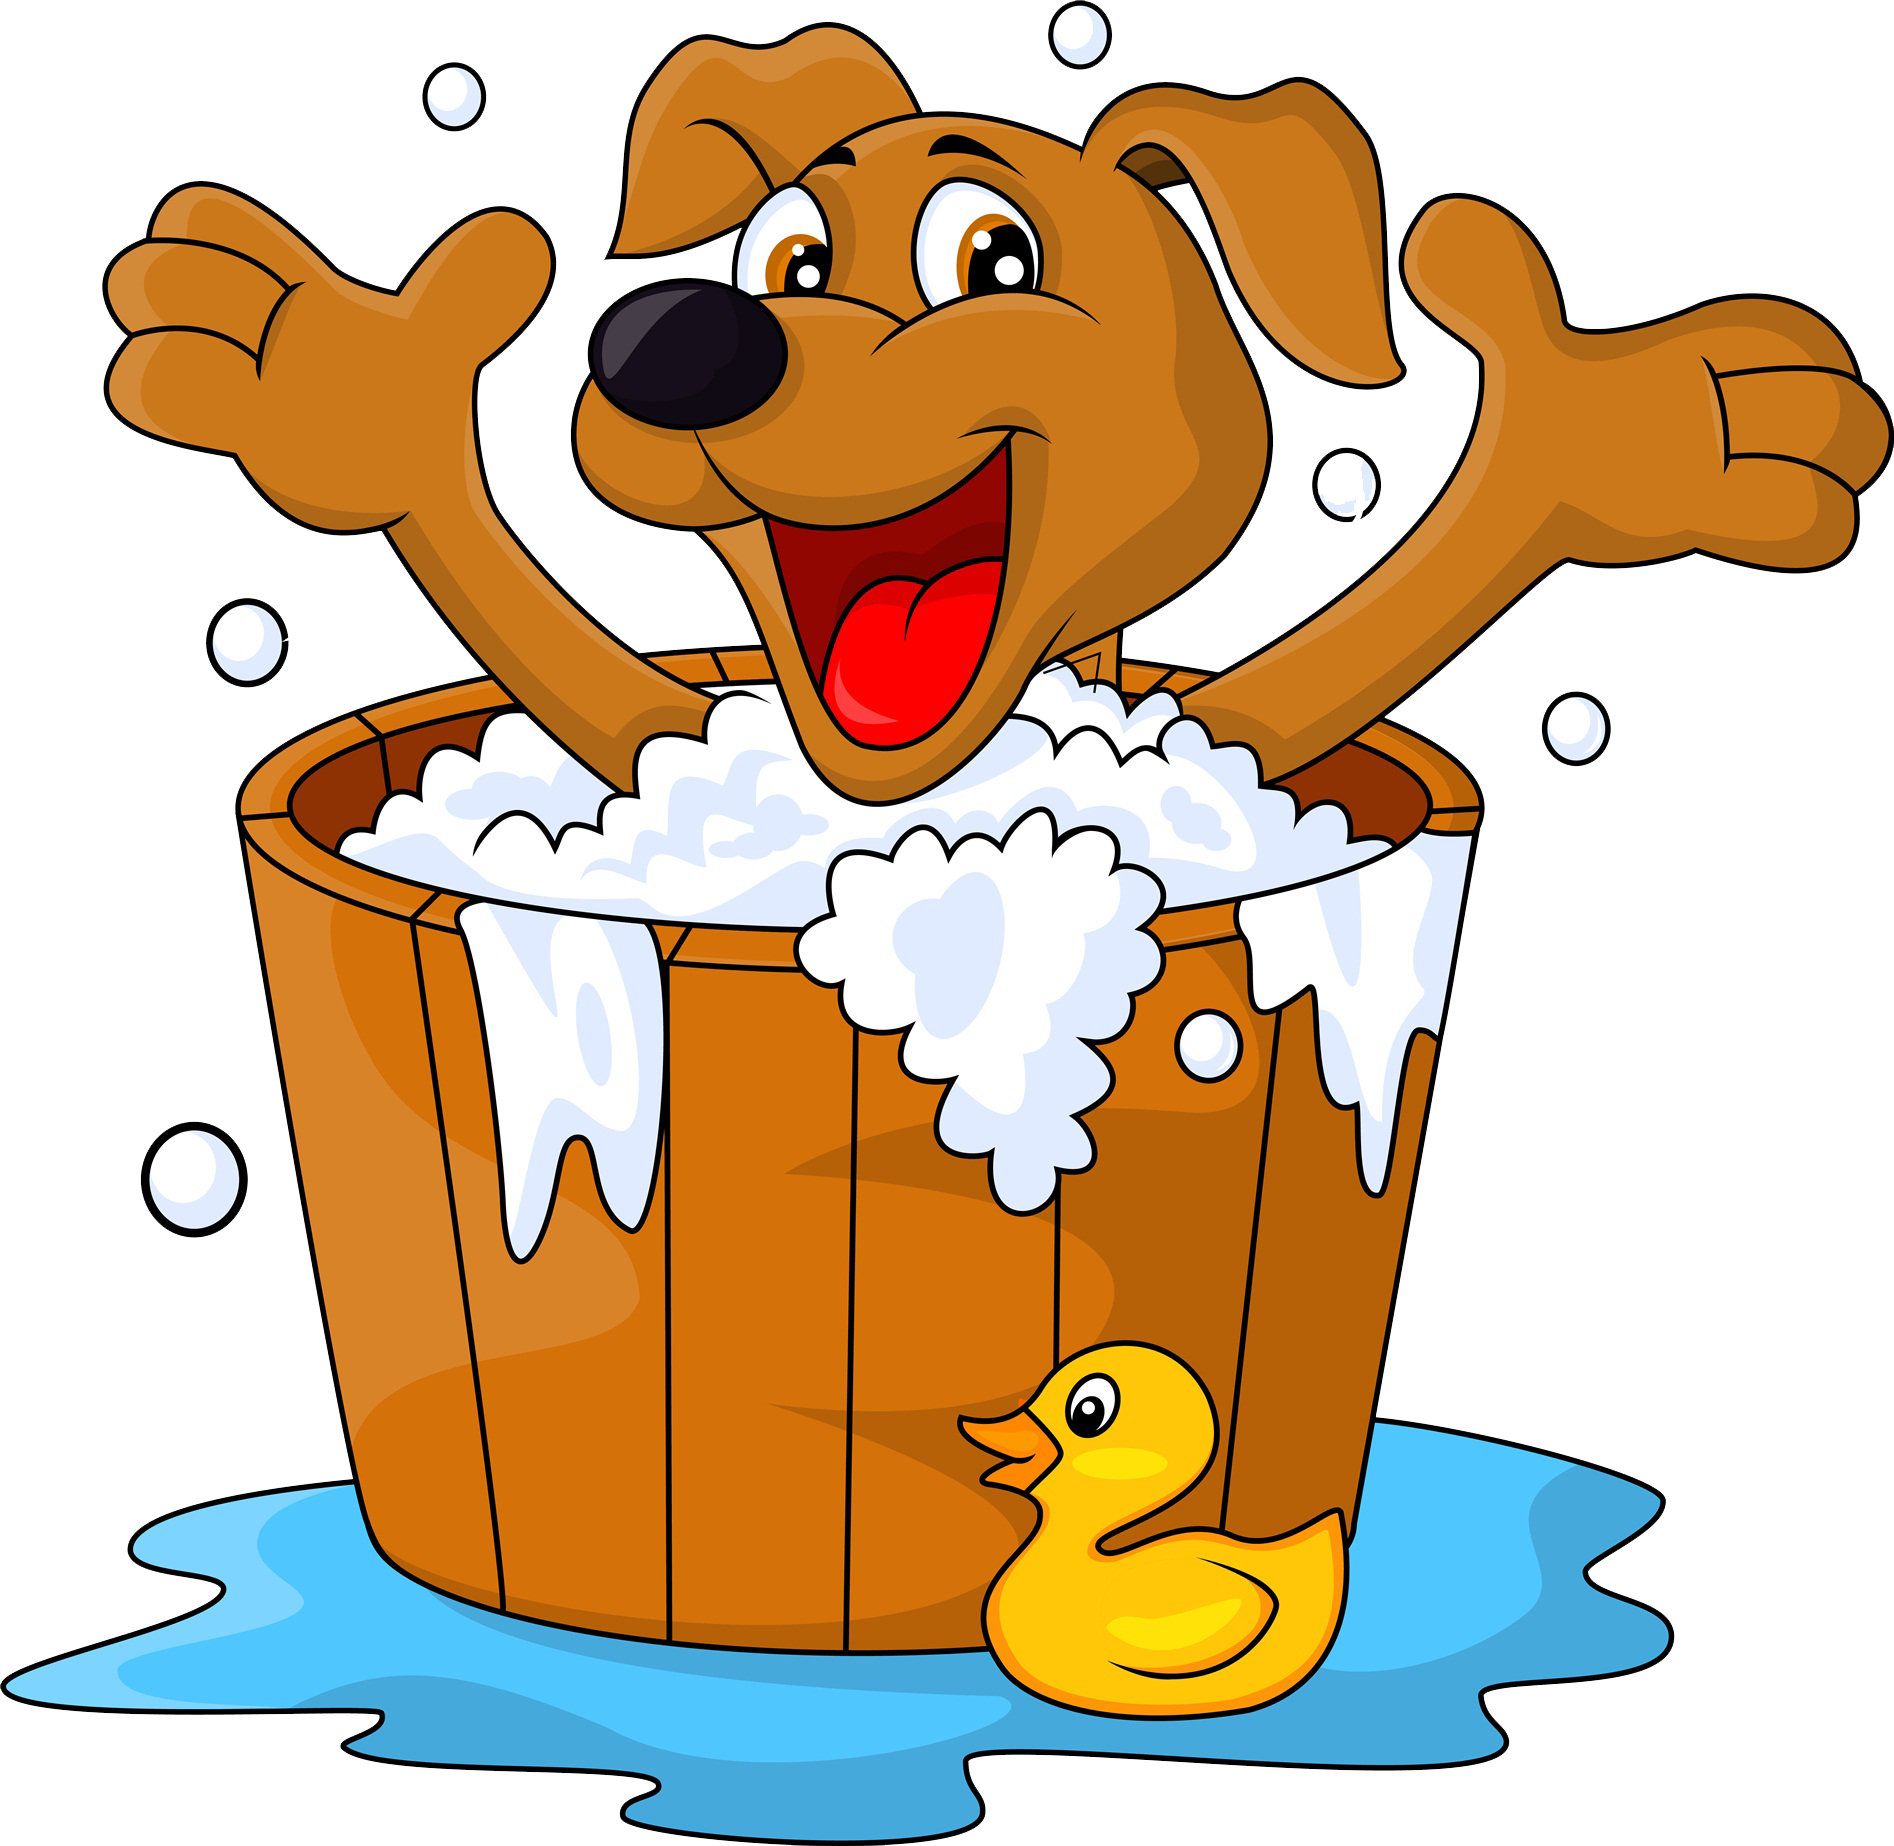 svg library library Maltese shower free on. Showering clipart.